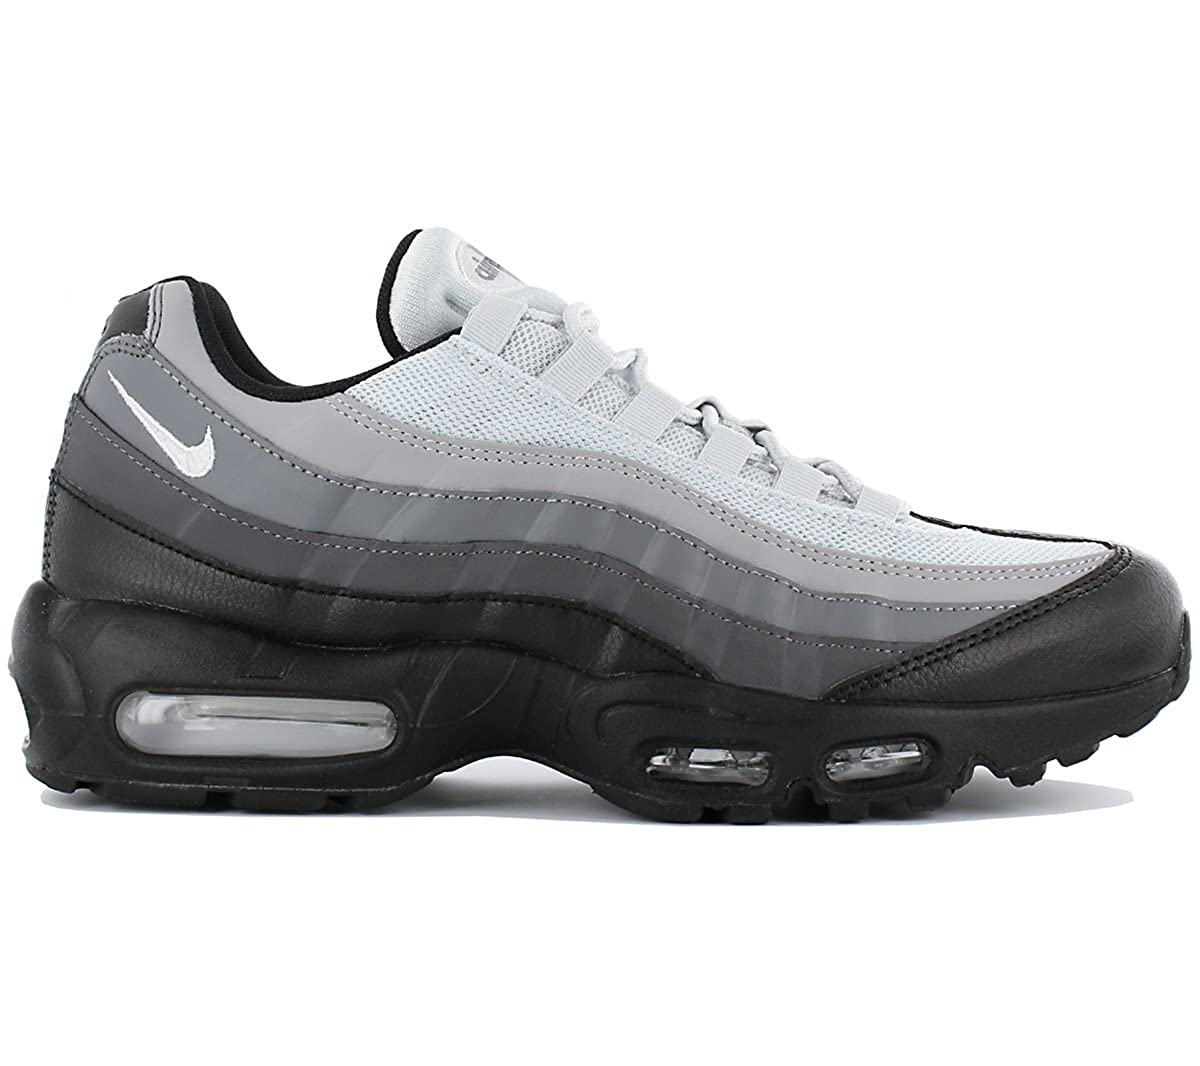 Nike Air Max 95 Essential Men Black Dark Grey Cool Grey White 749766-022  (10.5)  Buy Online at Low Prices in India - Amazon.in 04f8e28e50